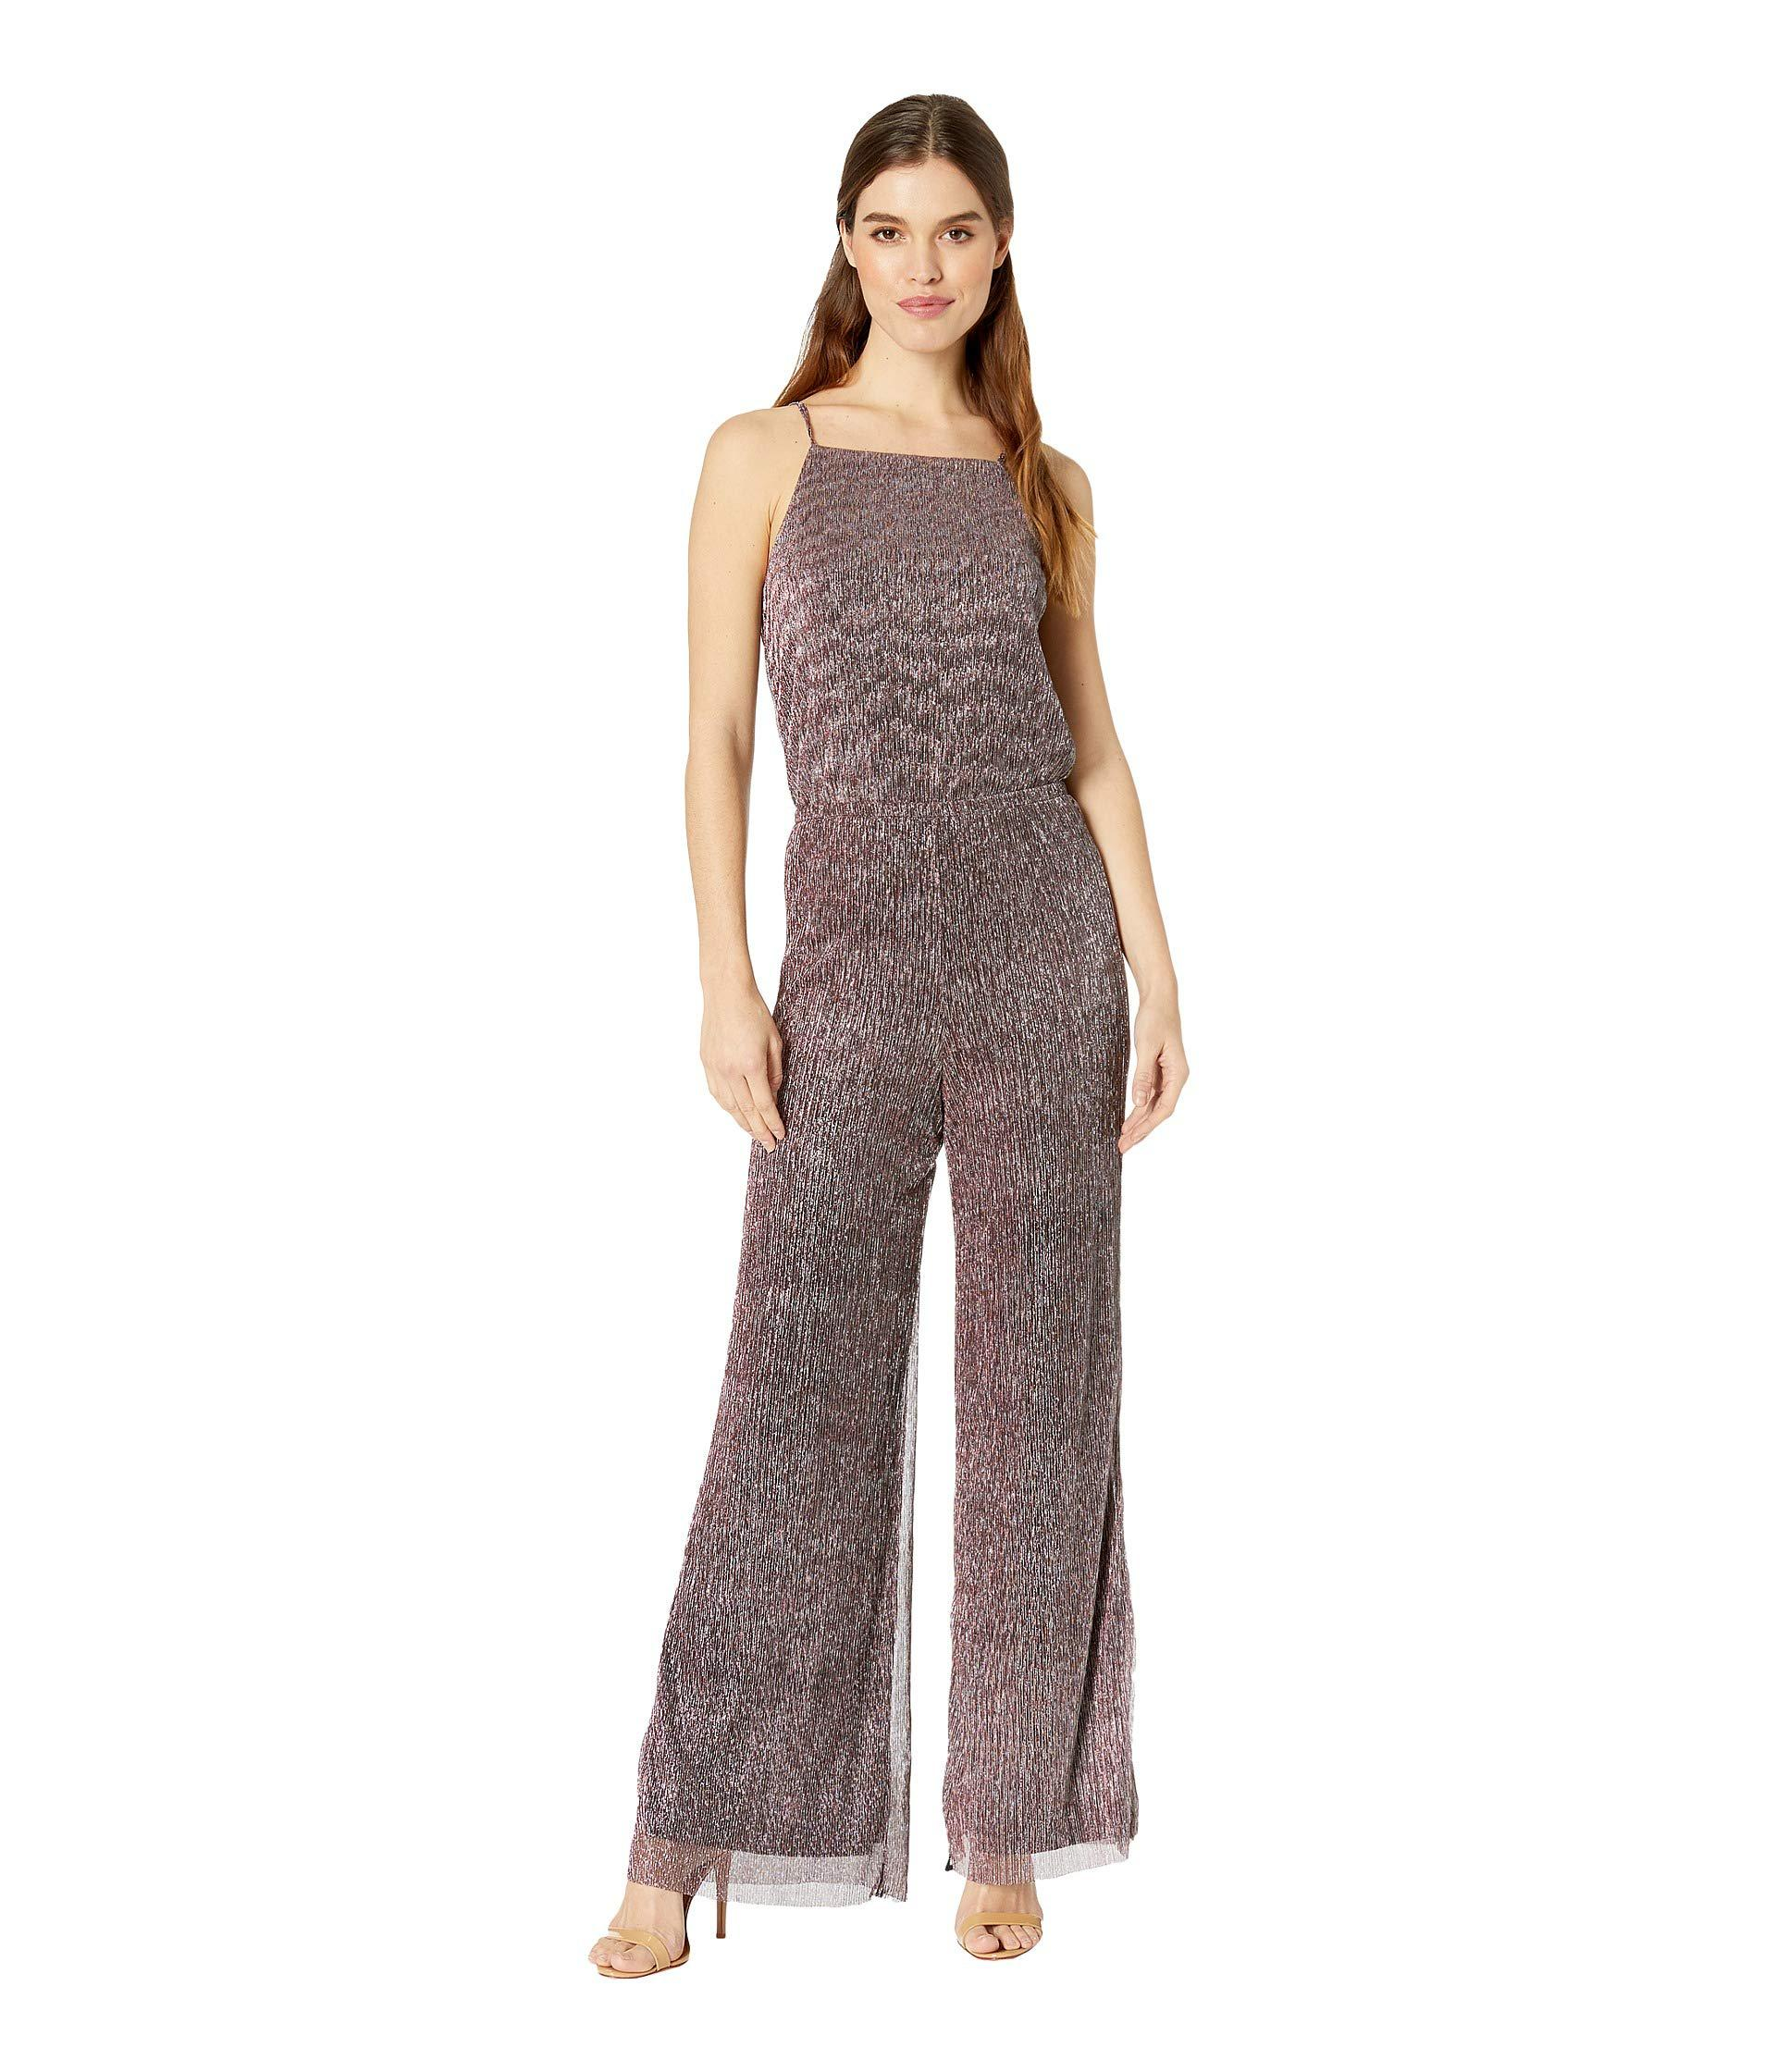 8b203db0c6d8 Lyst cupcakes and cashmere campell metallic shimmer jumpsuit jpg 1920x2240 Metallic  rompers for women